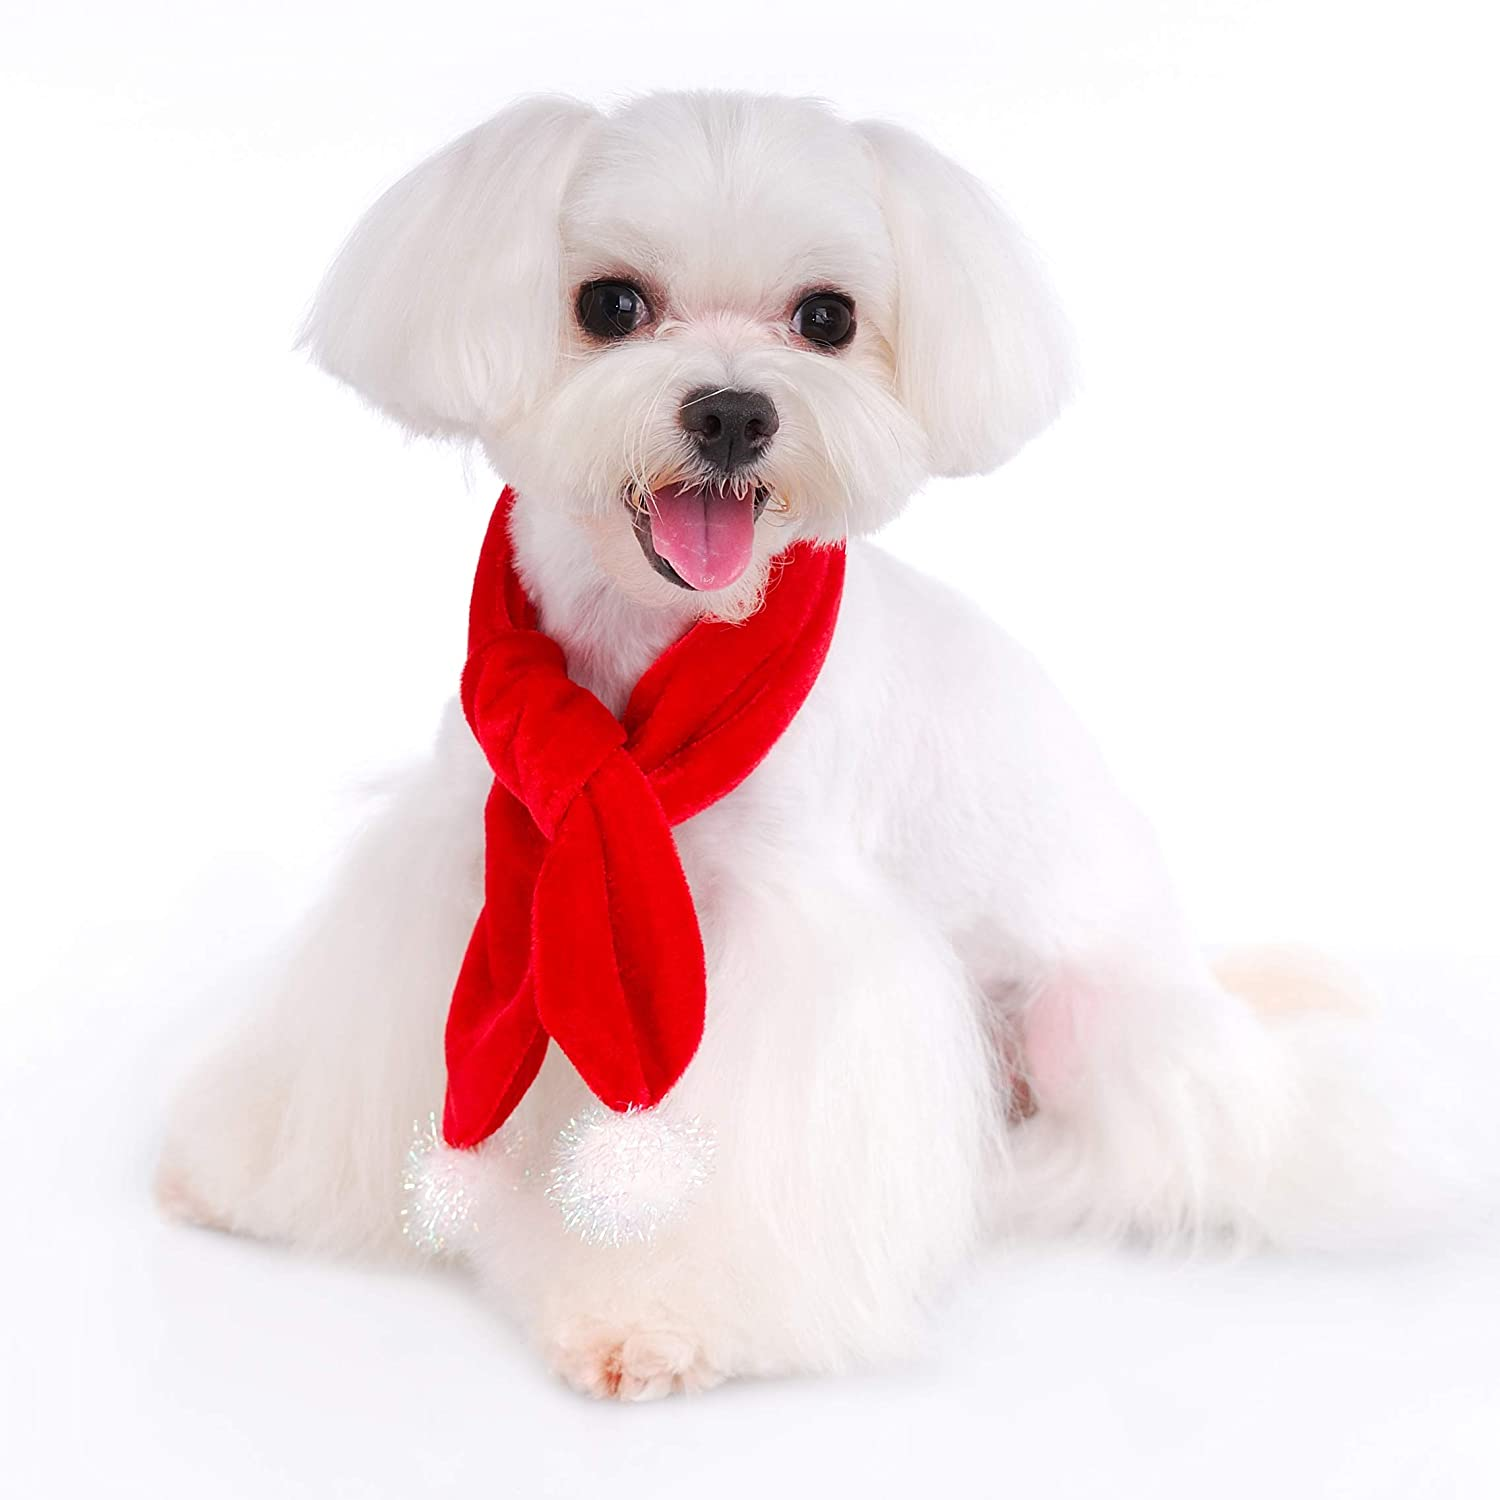 Great for Family Xmas Card Photos Scarf Pooch Outfitters Dog Christmas Outfit Collection Coat Collar Slider Dress Pajamas and Hat Tie Bow Tie